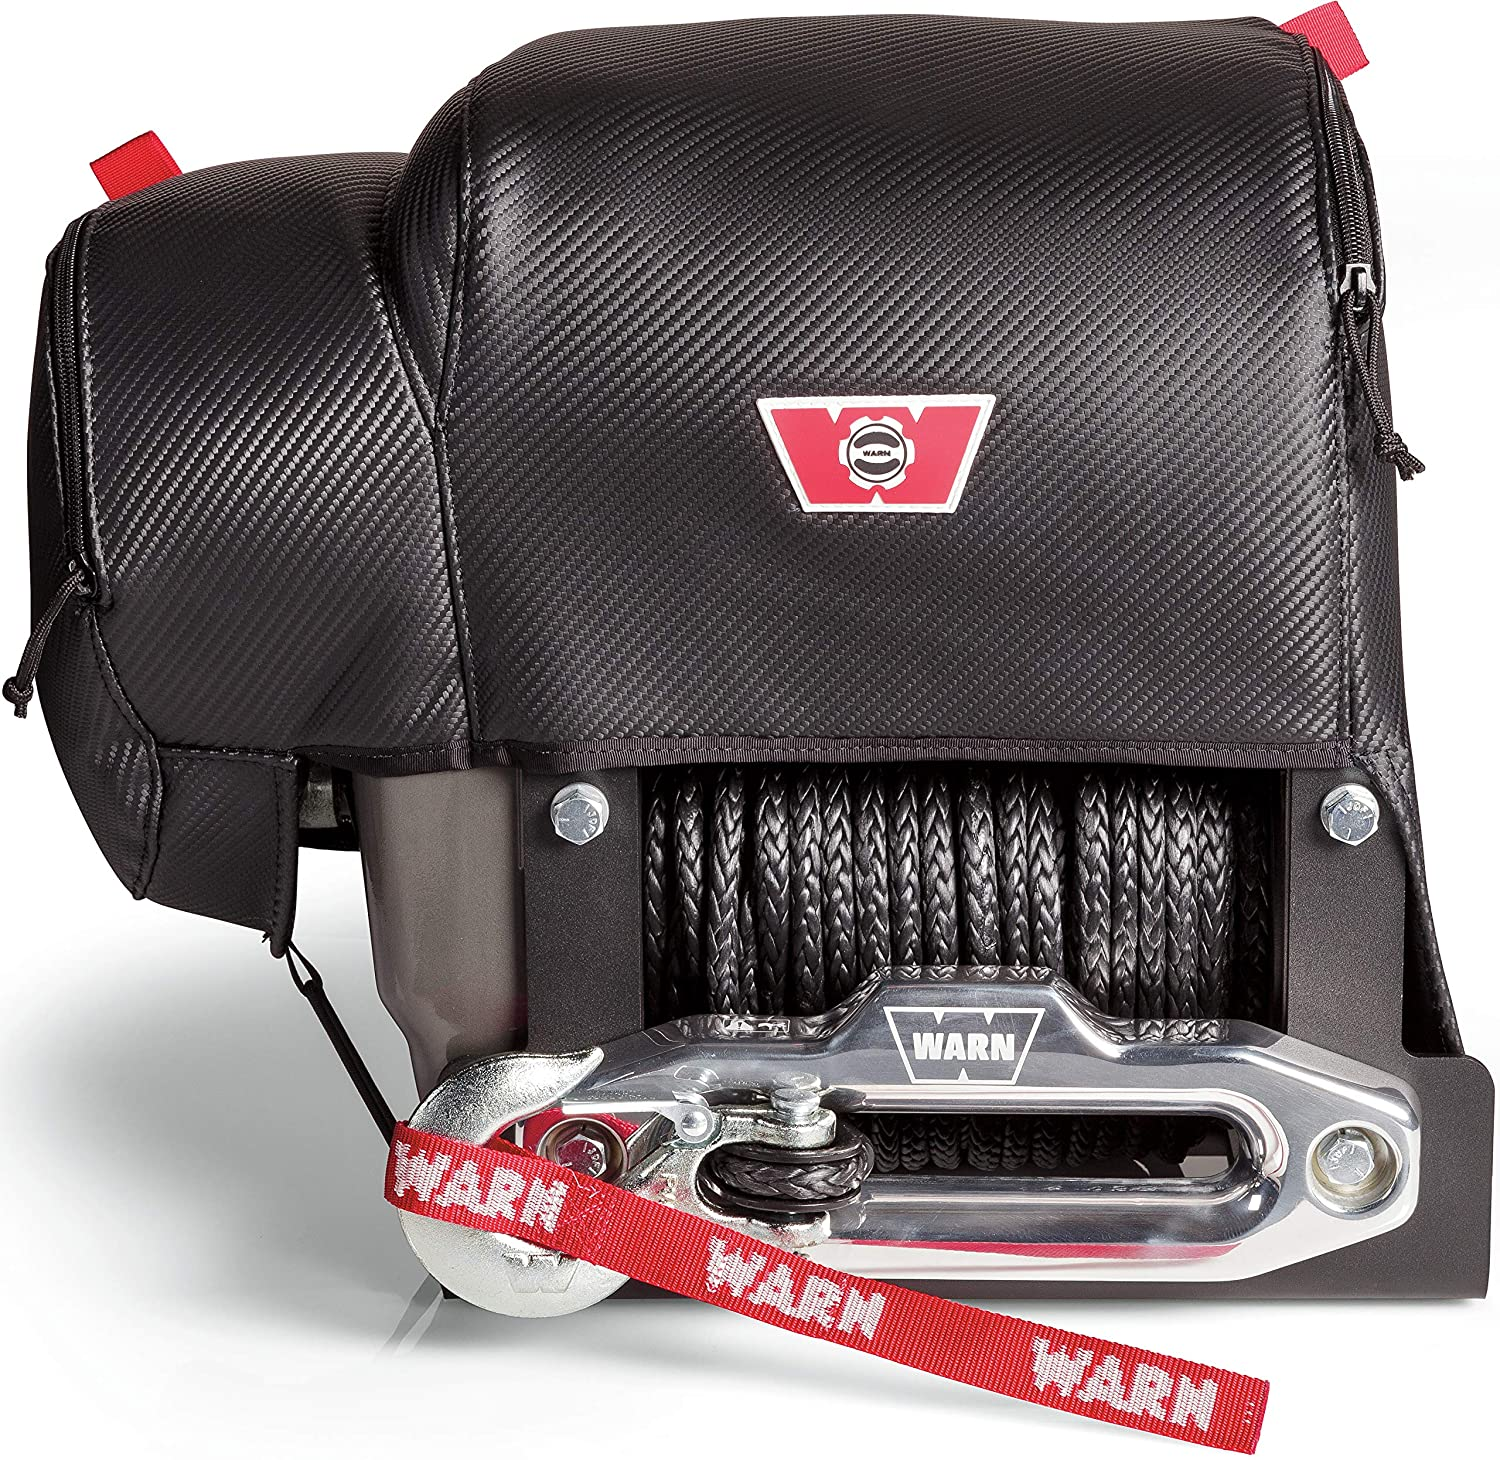 WARN 102643 Stealth Series Winch Cover Fits M8274